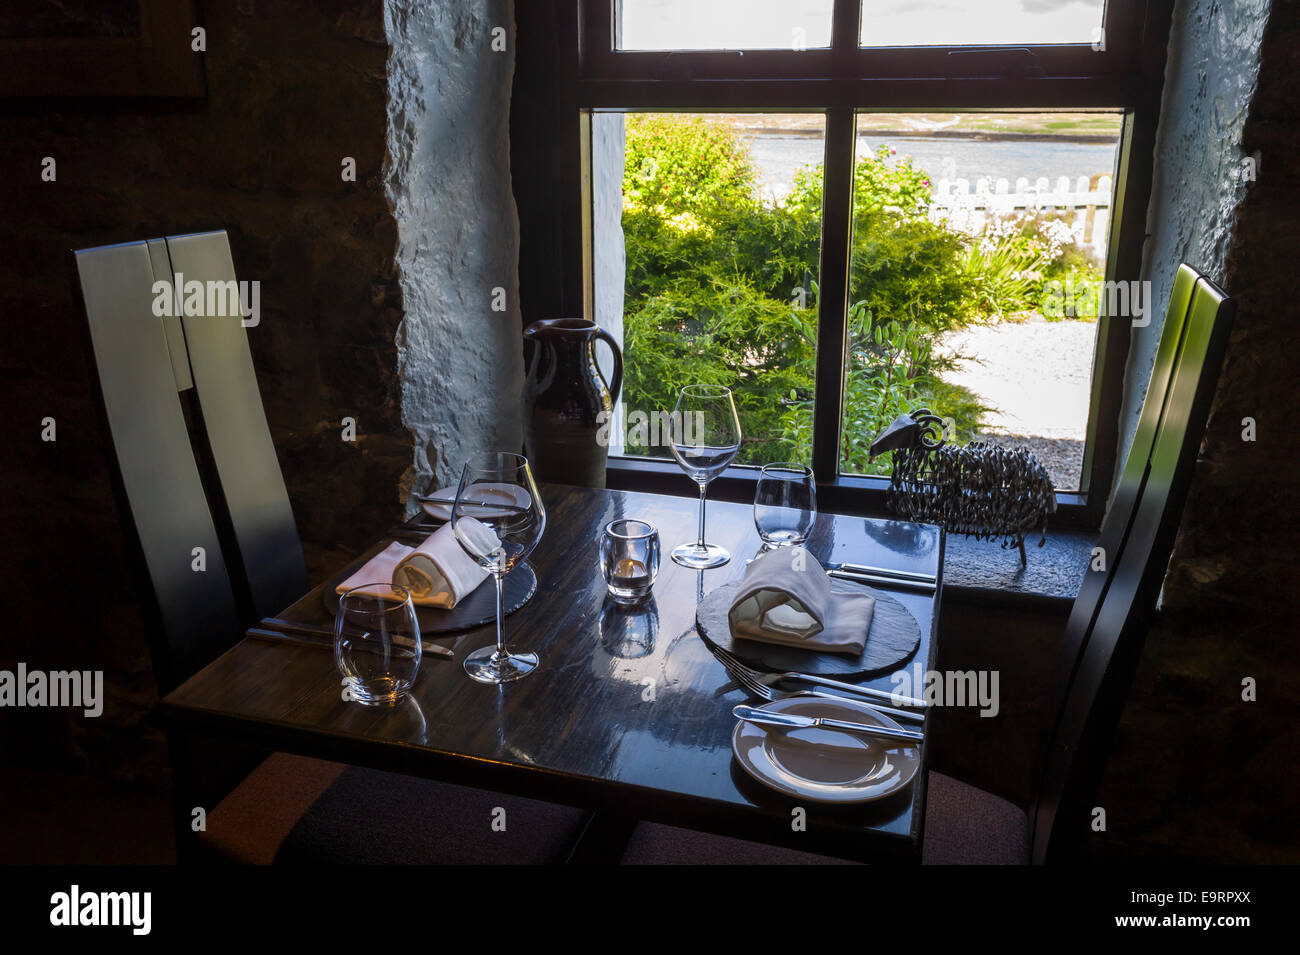 Table place setting with glassware, crockery, cutler, and napkins at renowned gastronomic five star restaurant The - Stock Image